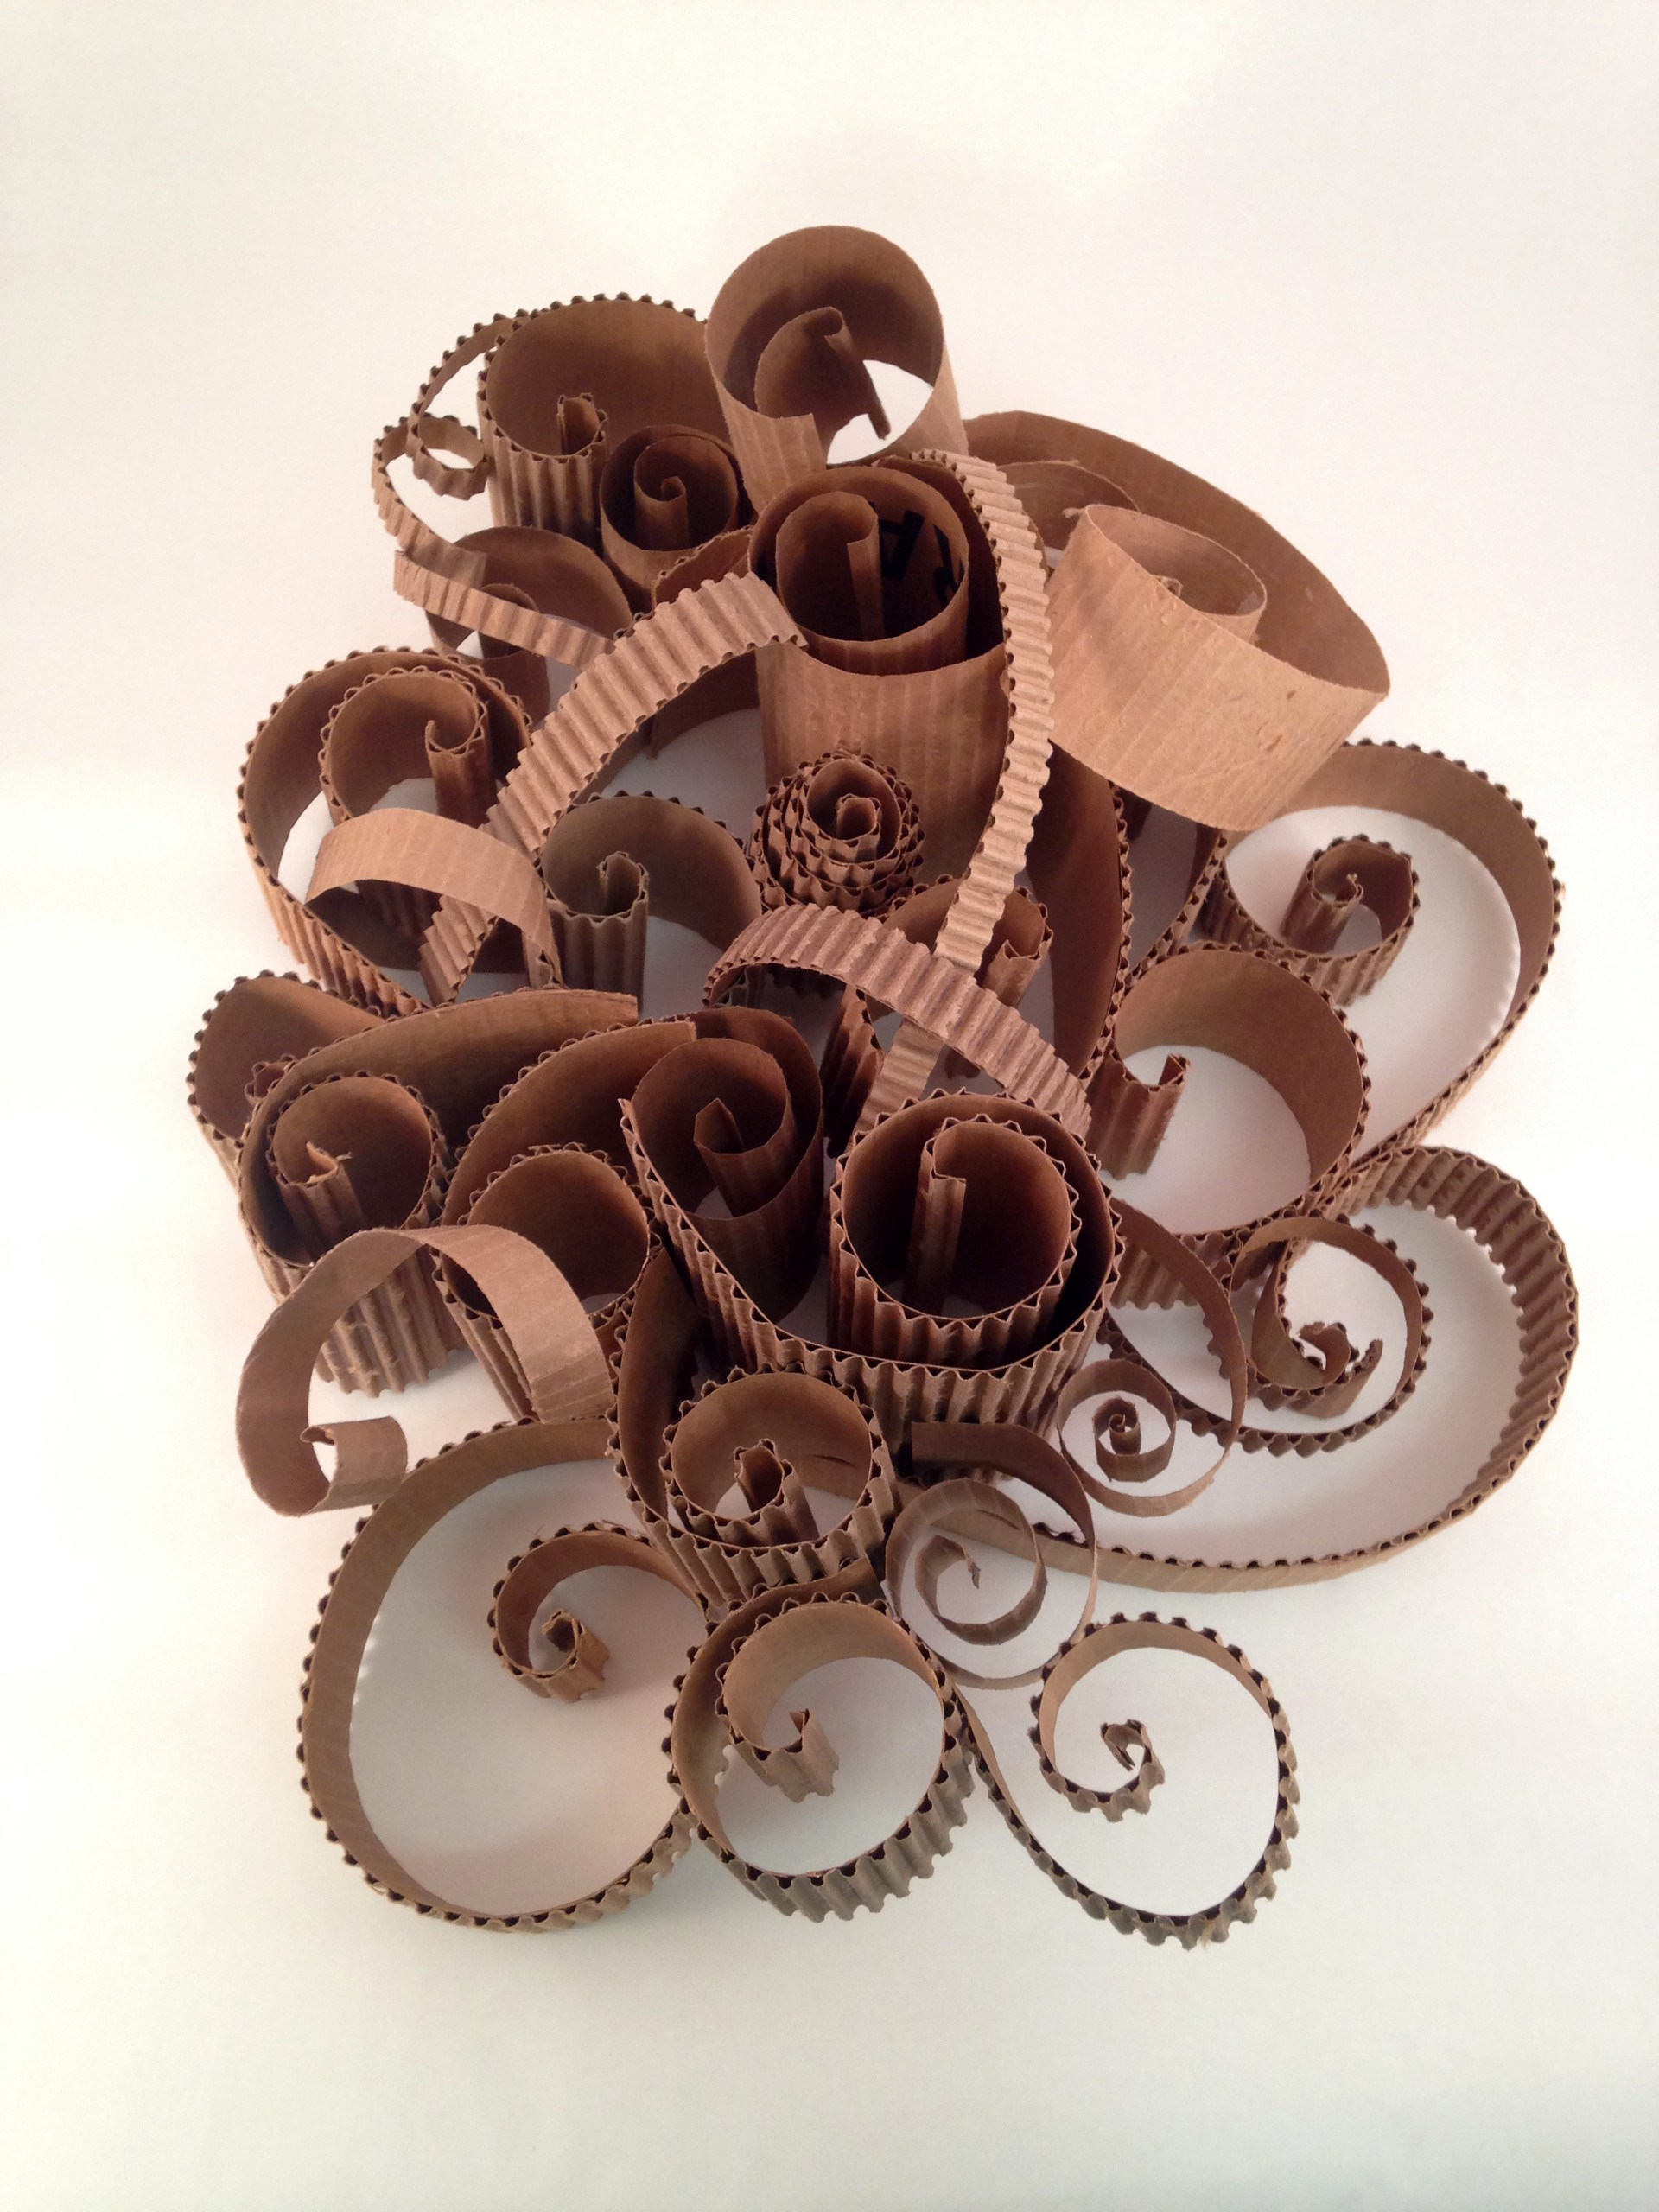 cardboard sculpture with swirled layers